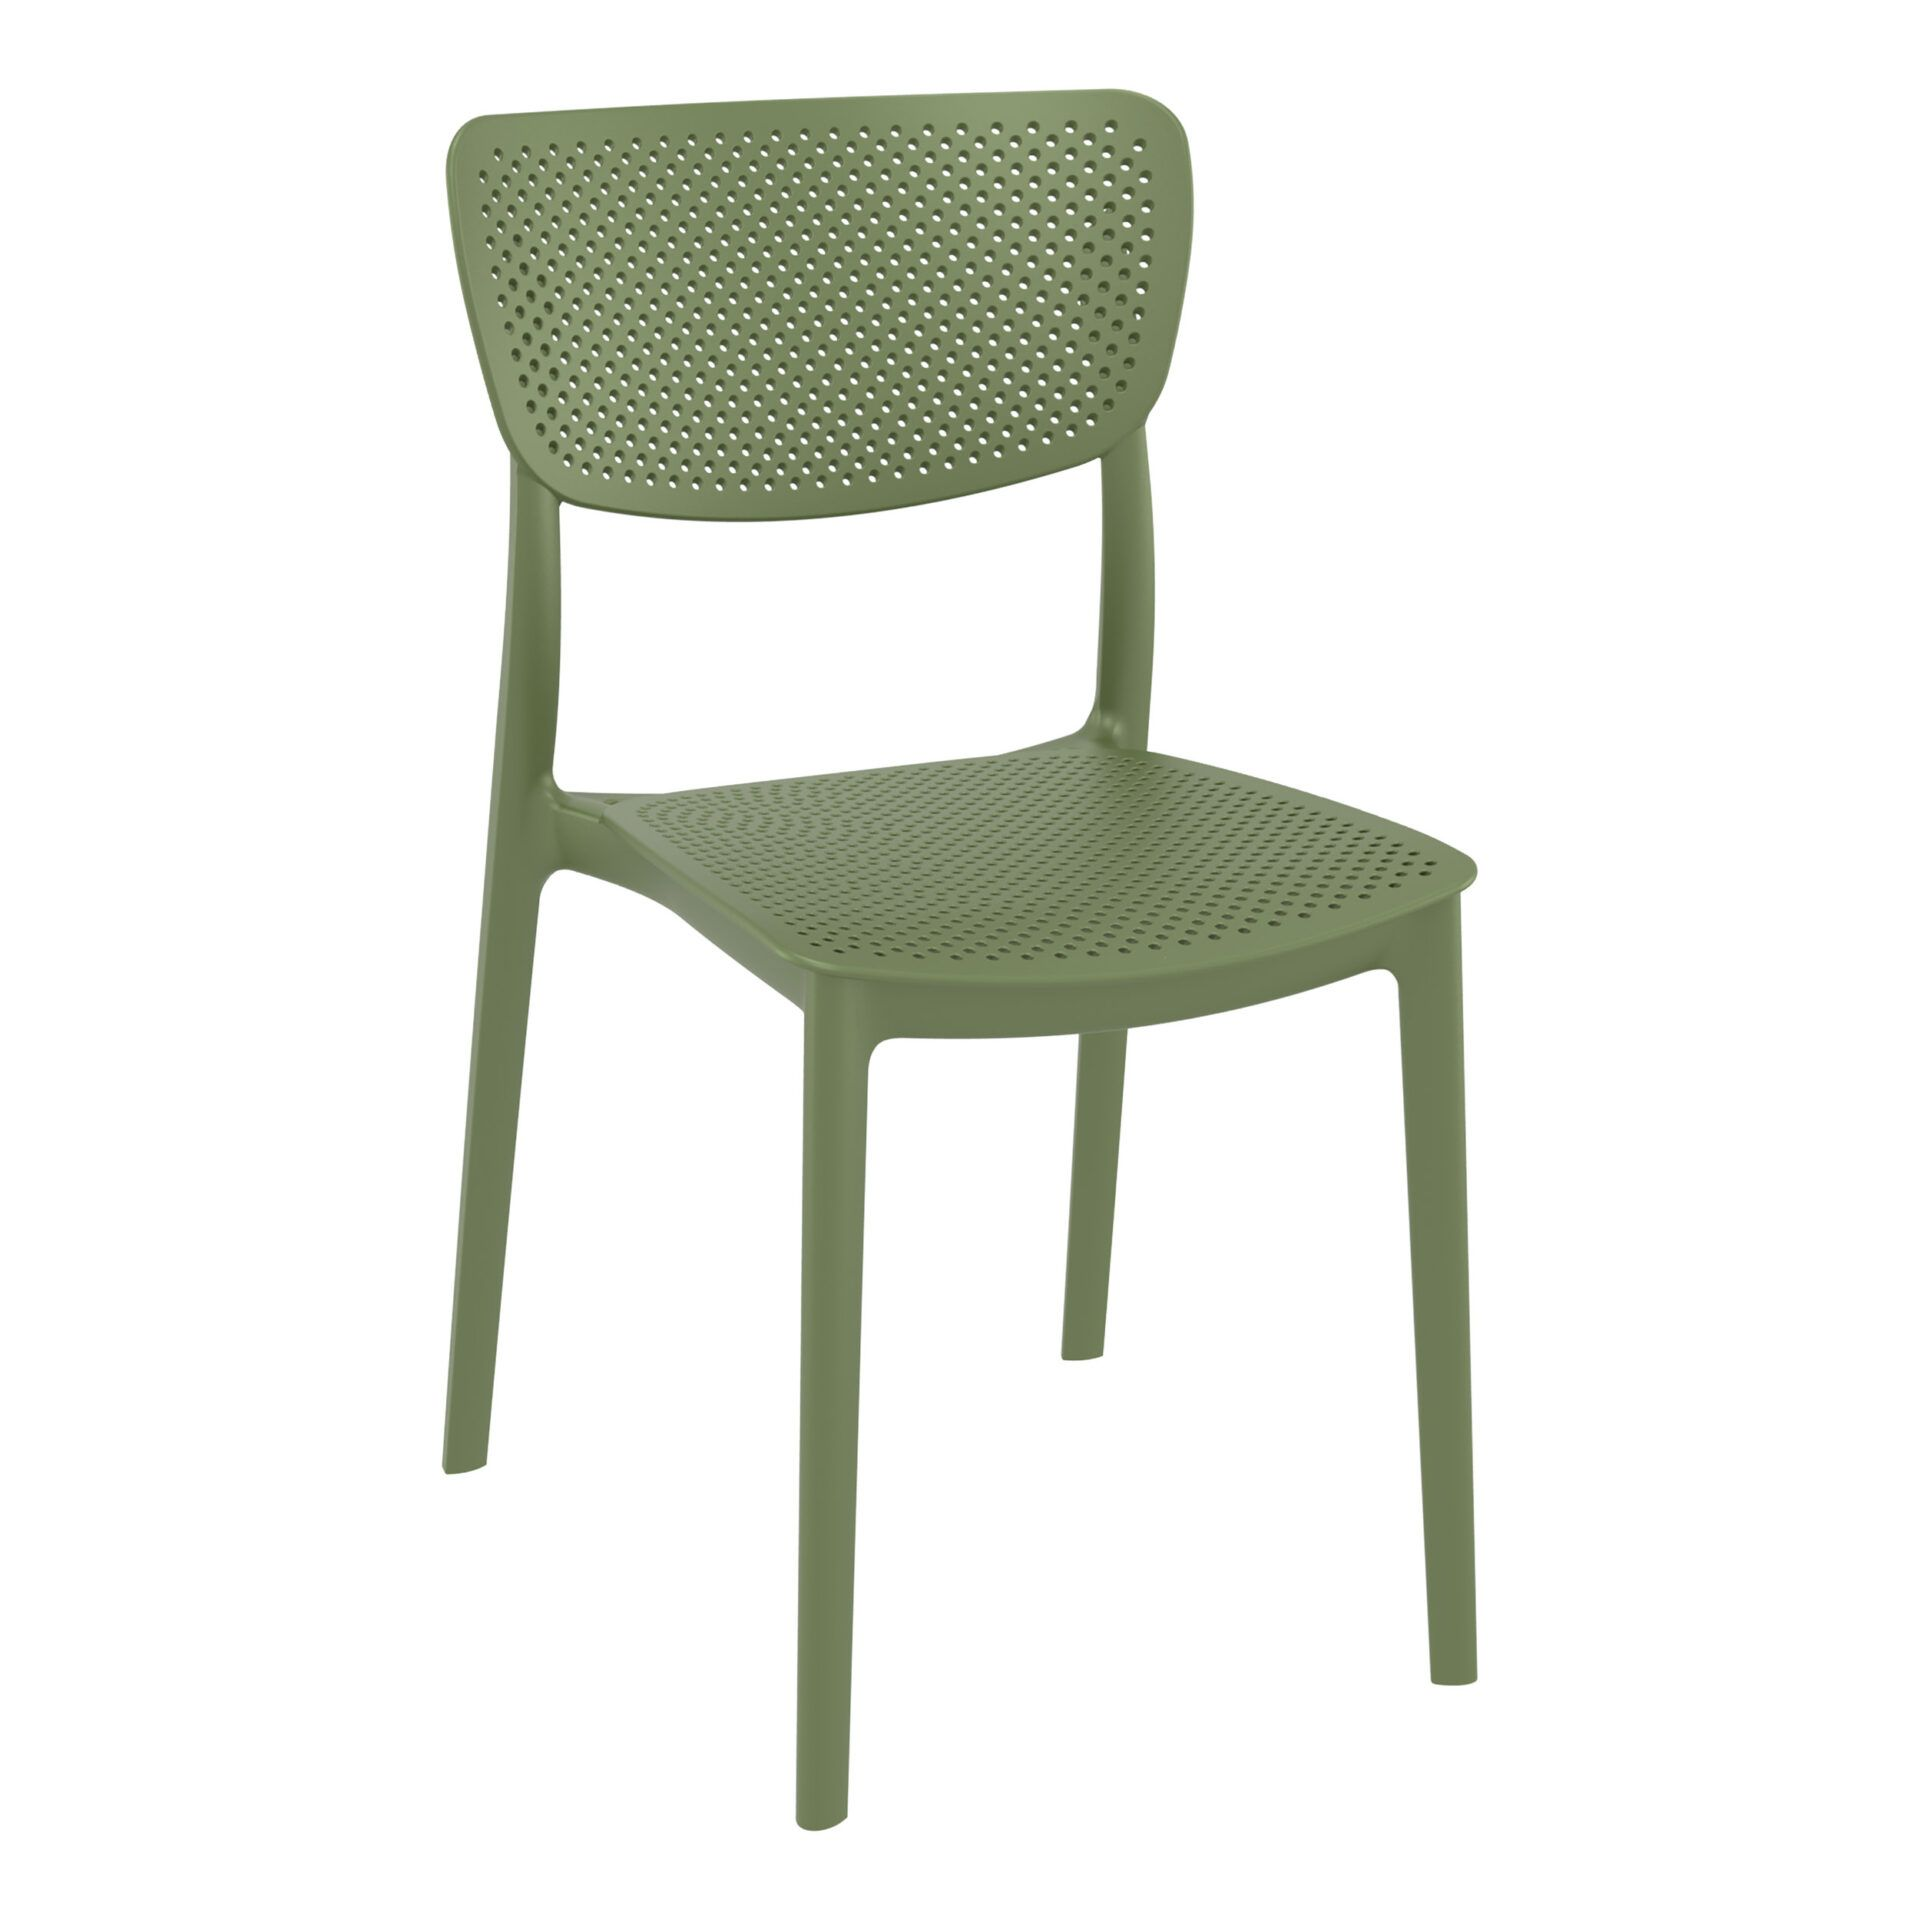 polypropylene hospitality seating lucy chair olive green front side